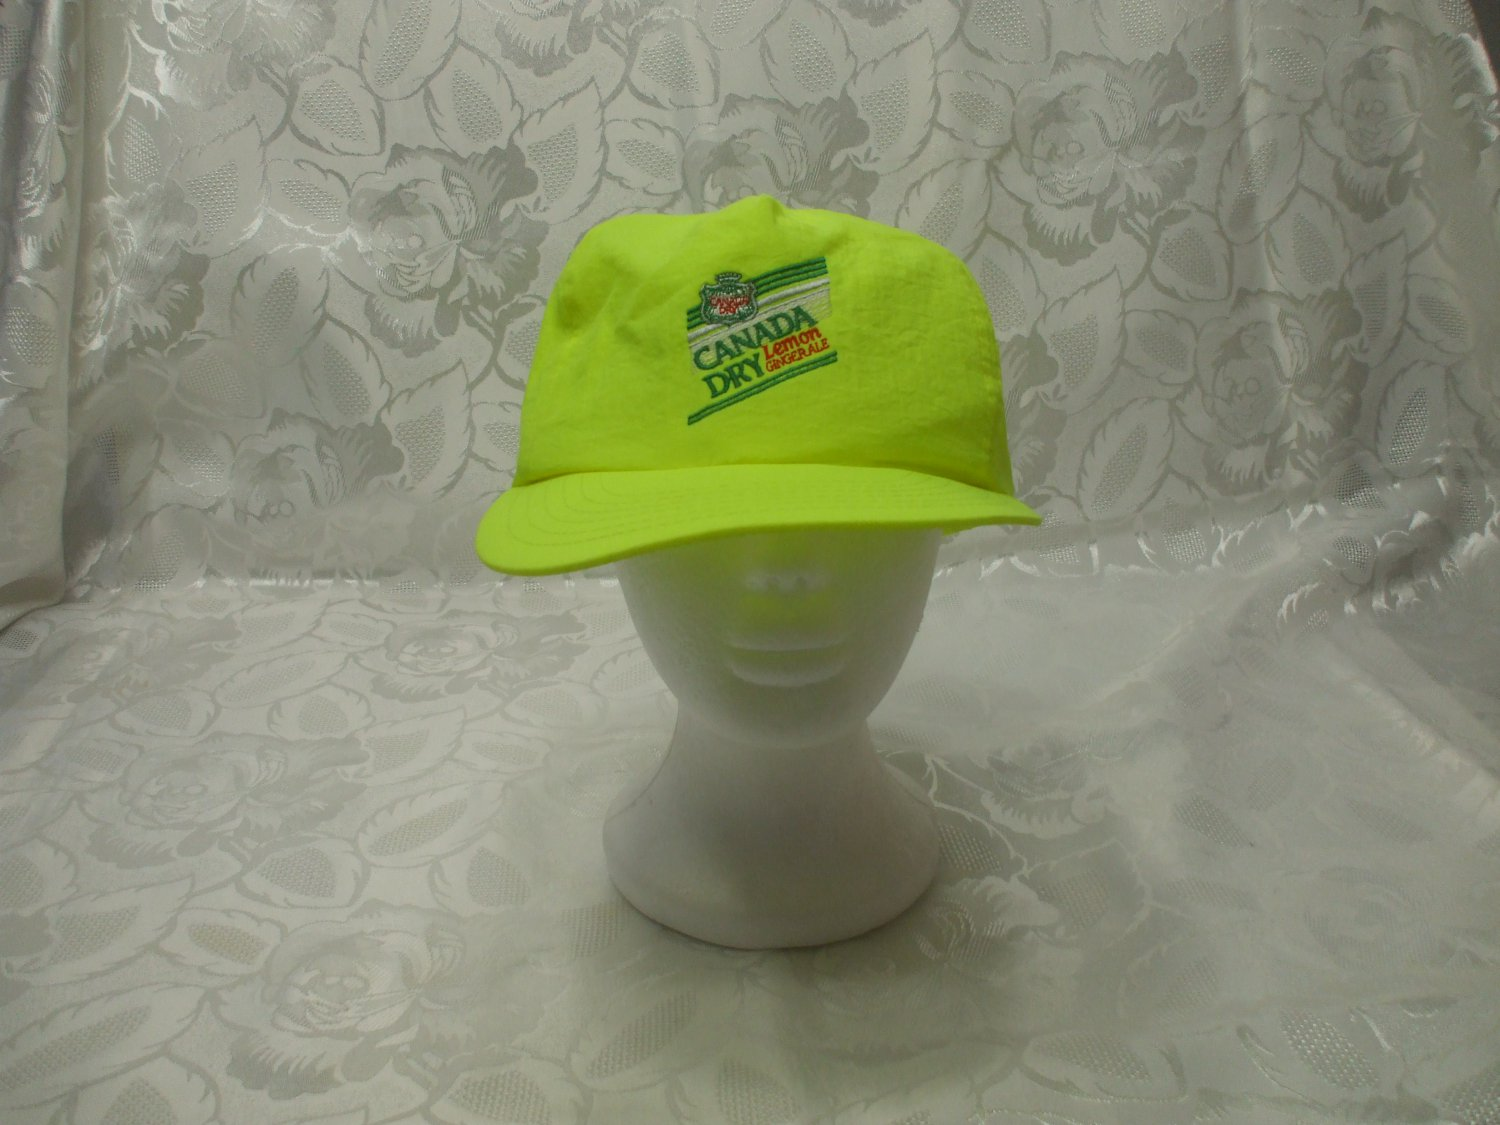 Canada Dry Yellow Baseball Cap One Size Fits All